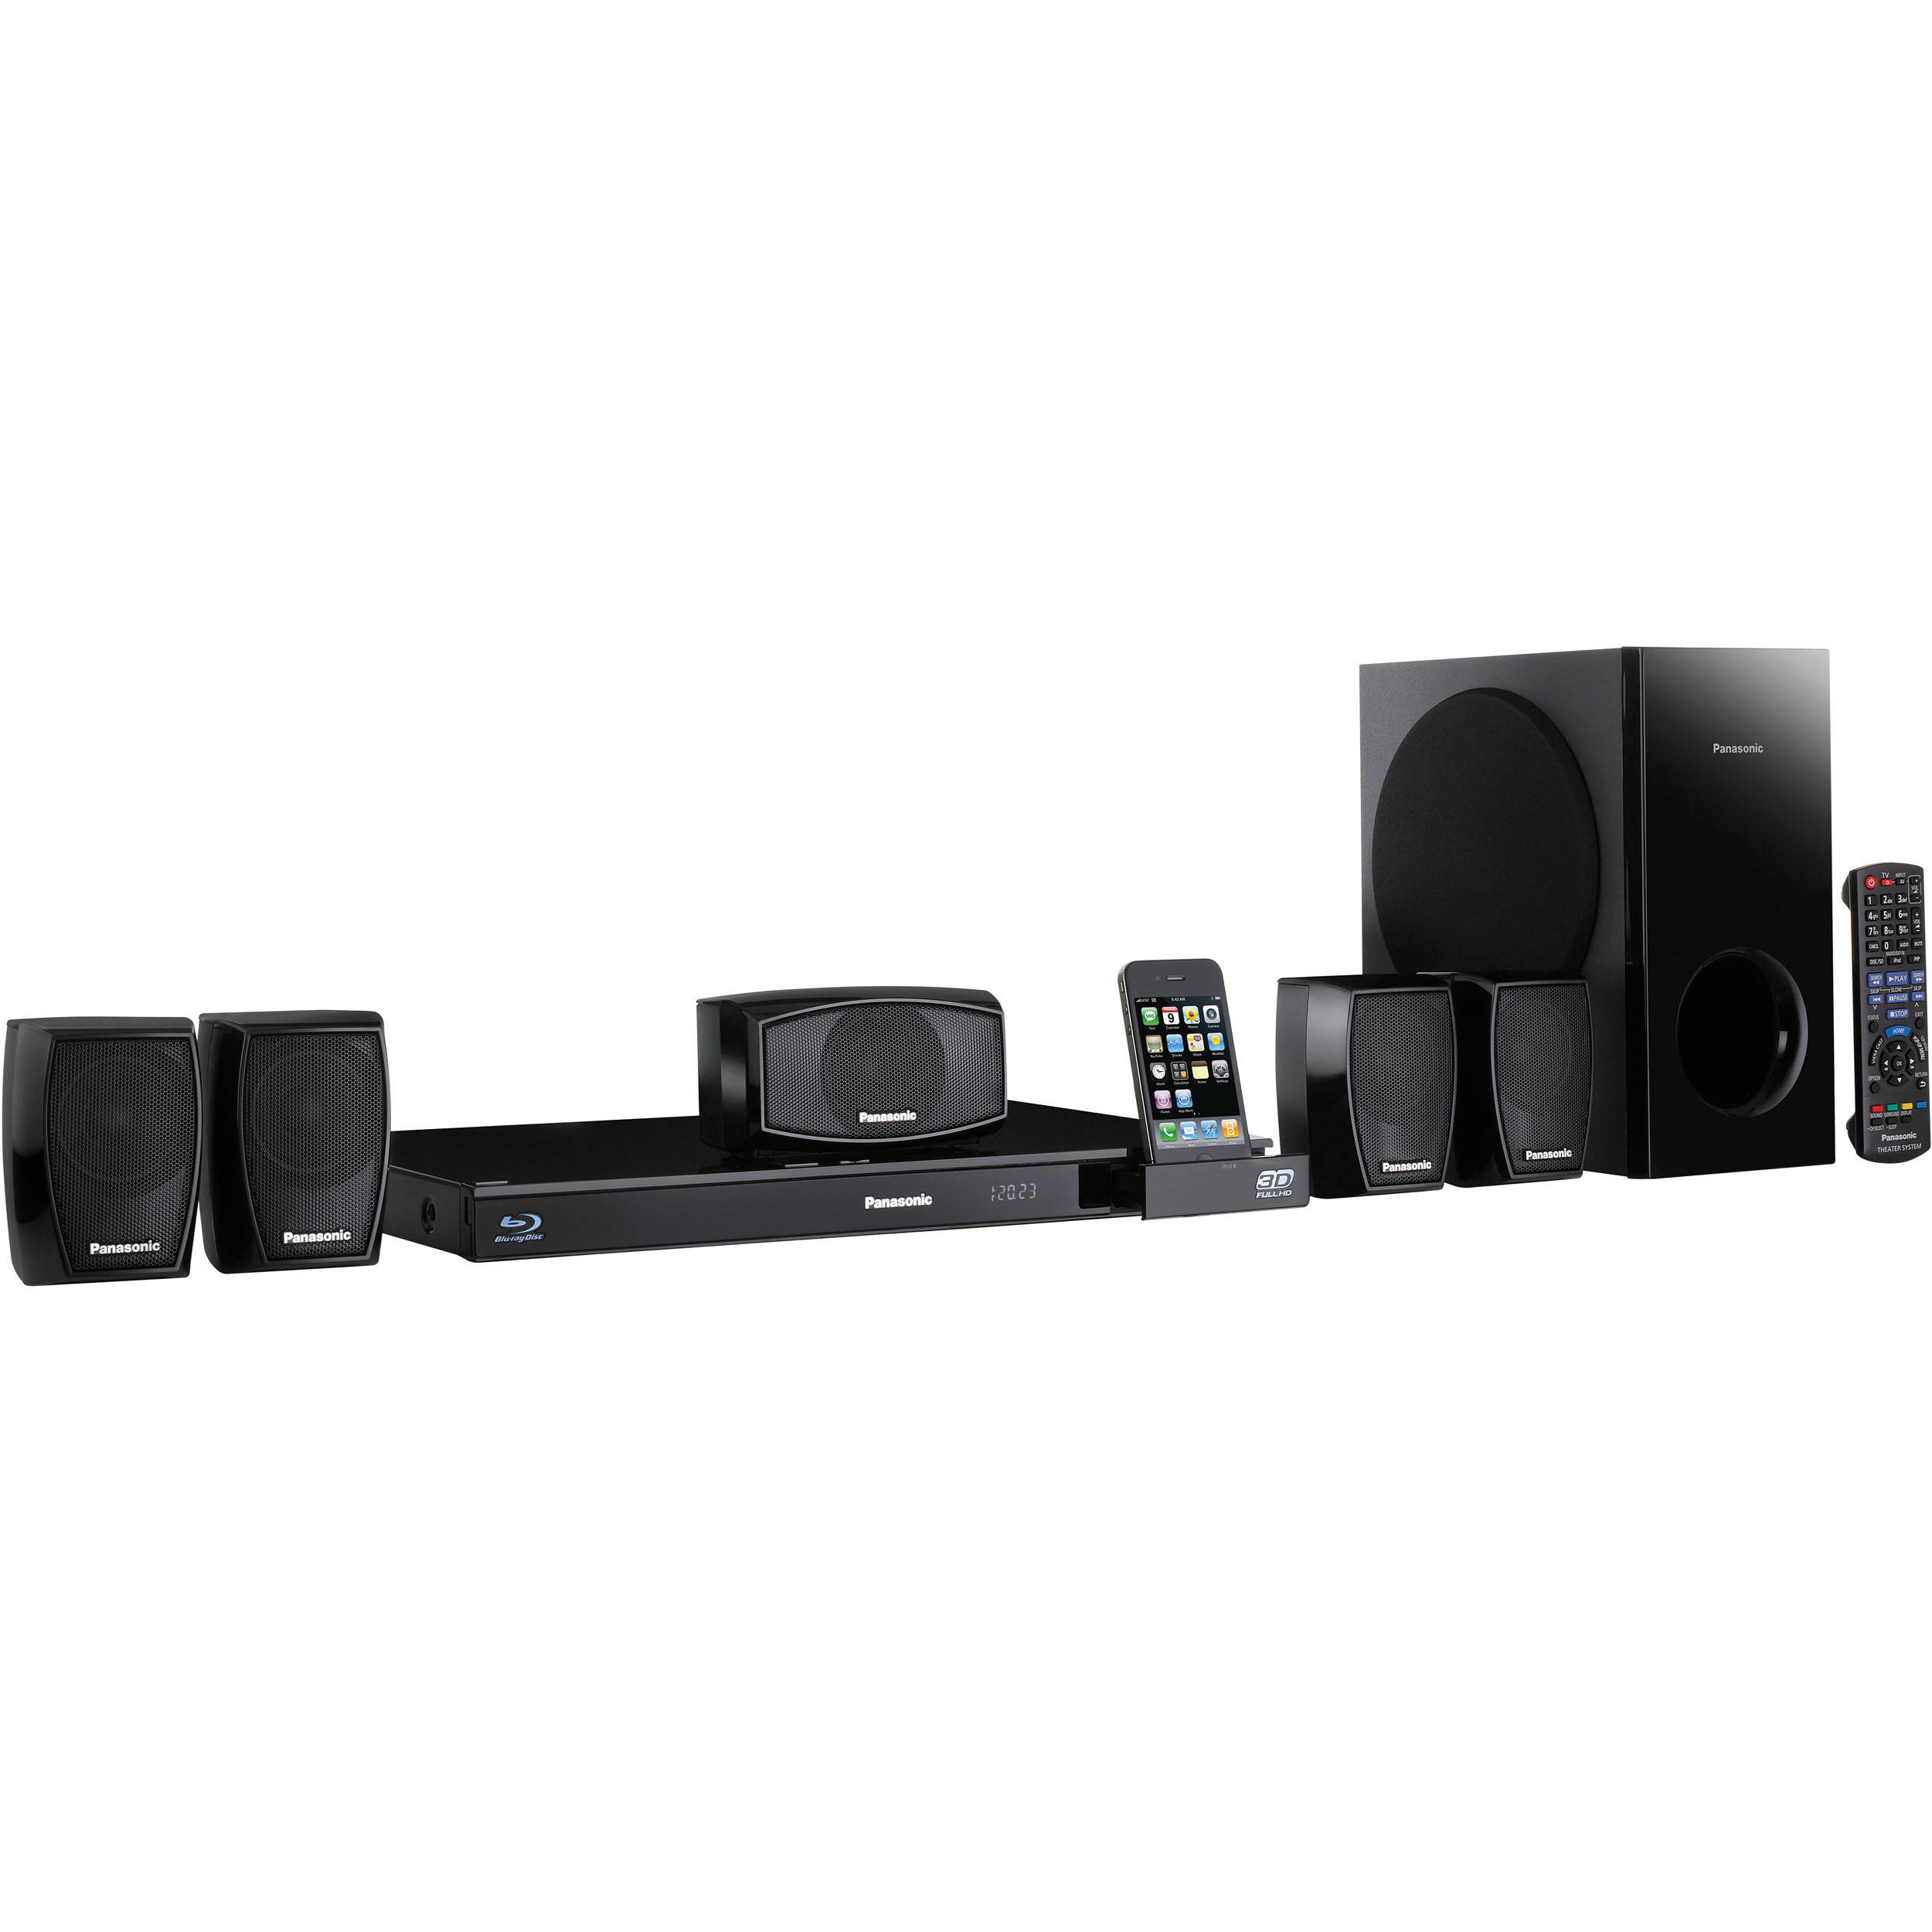 panasonic sc btt270 full hd 3d blu ray disc home. Black Bedroom Furniture Sets. Home Design Ideas